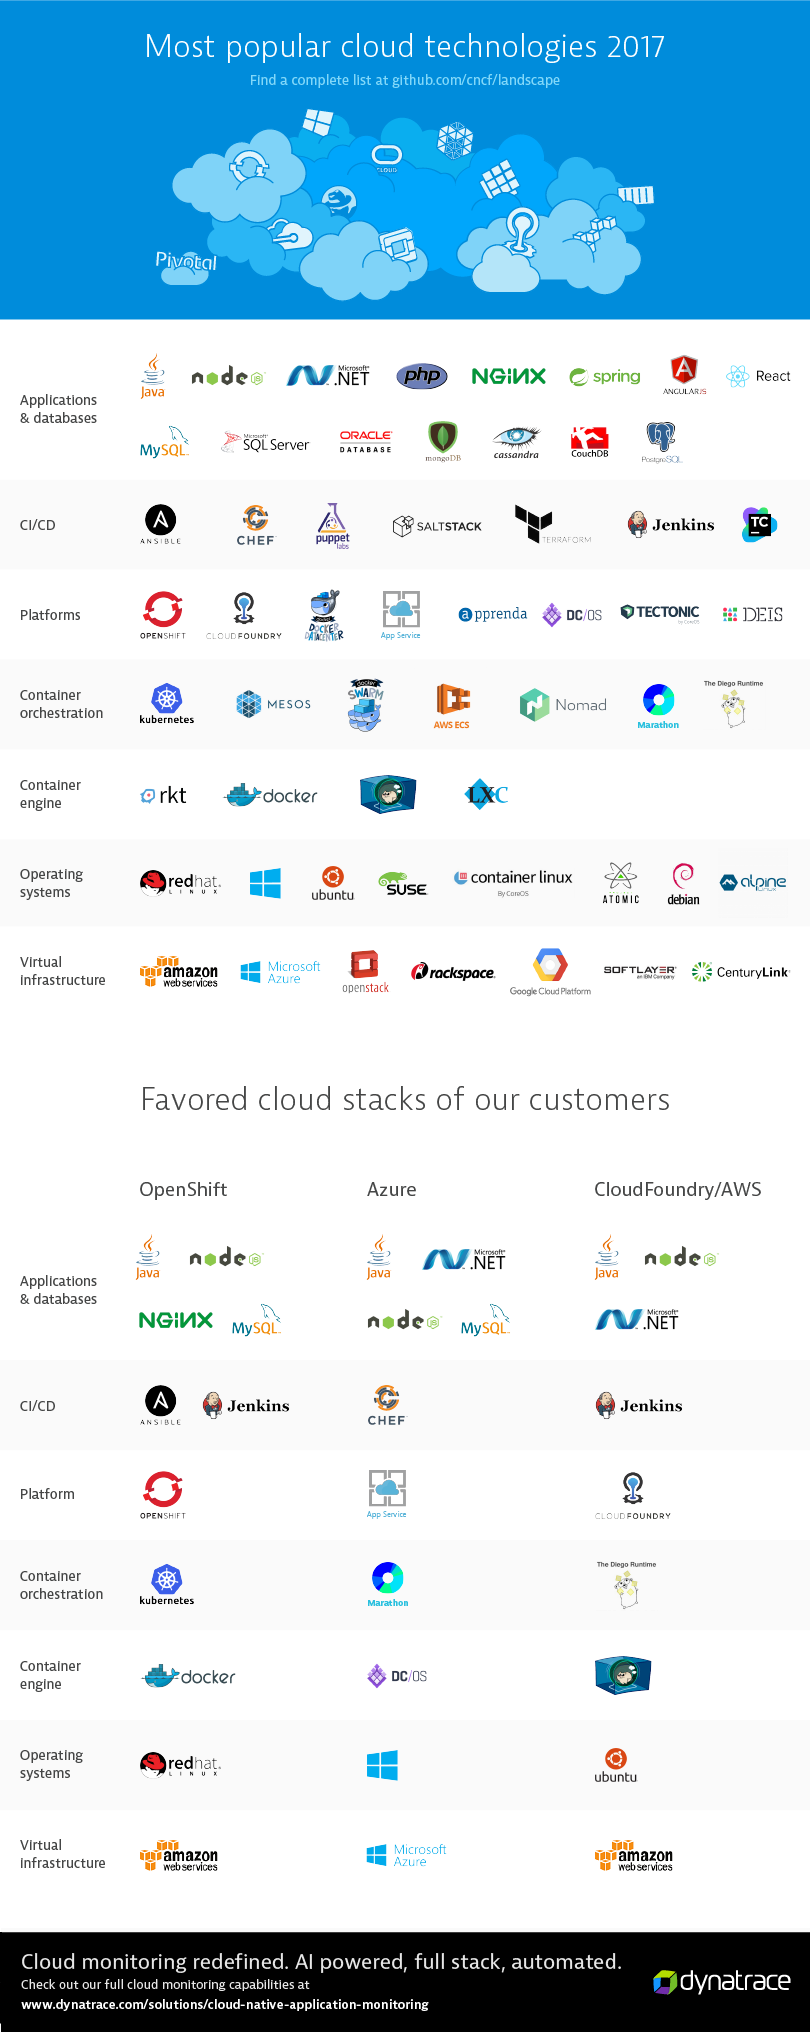 The most popular cloud technologies 2017